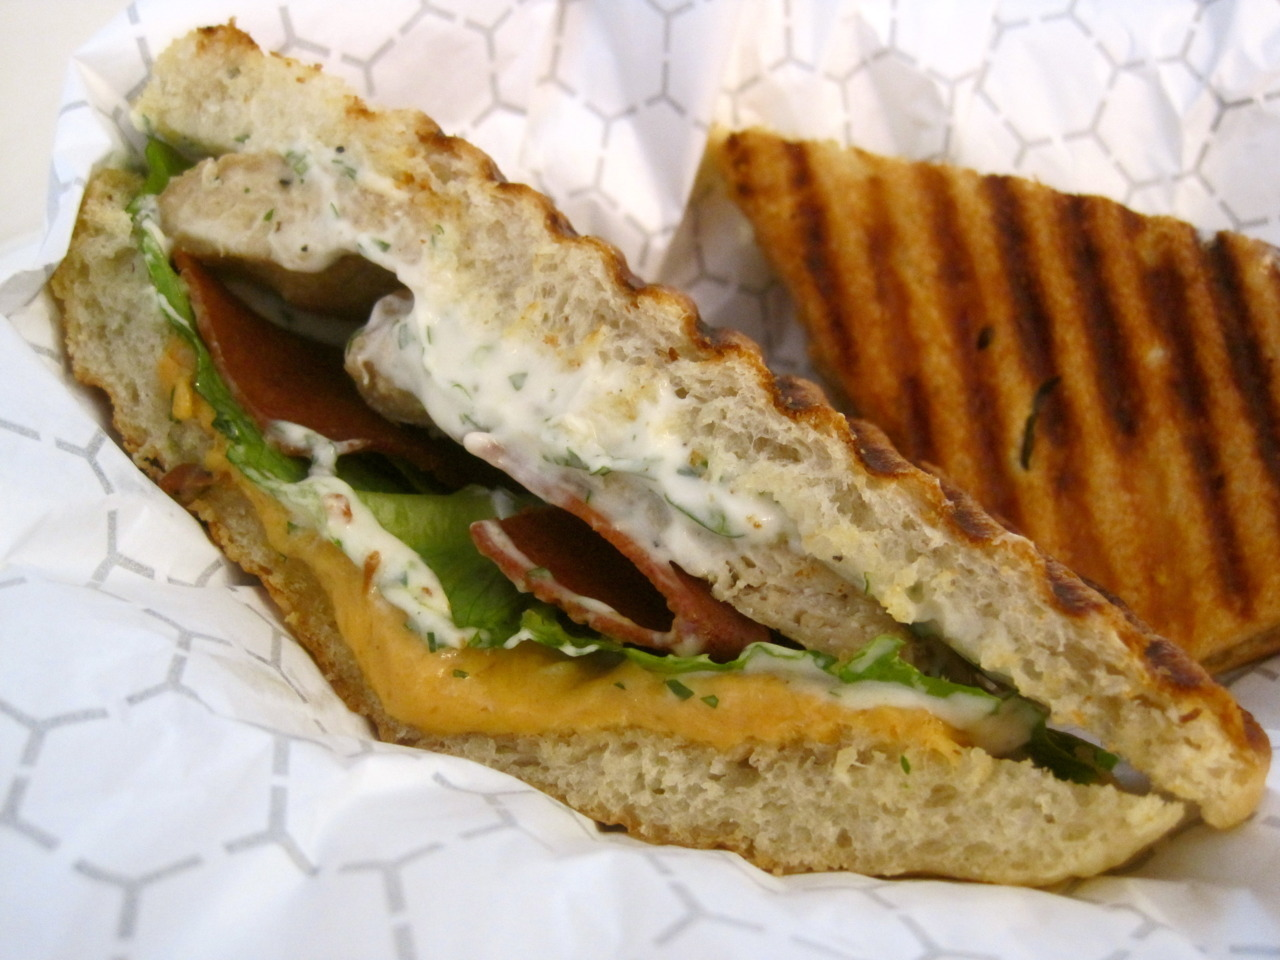 Bacon Cheddar Chicken Ranch sandwich from Terri in NYC!